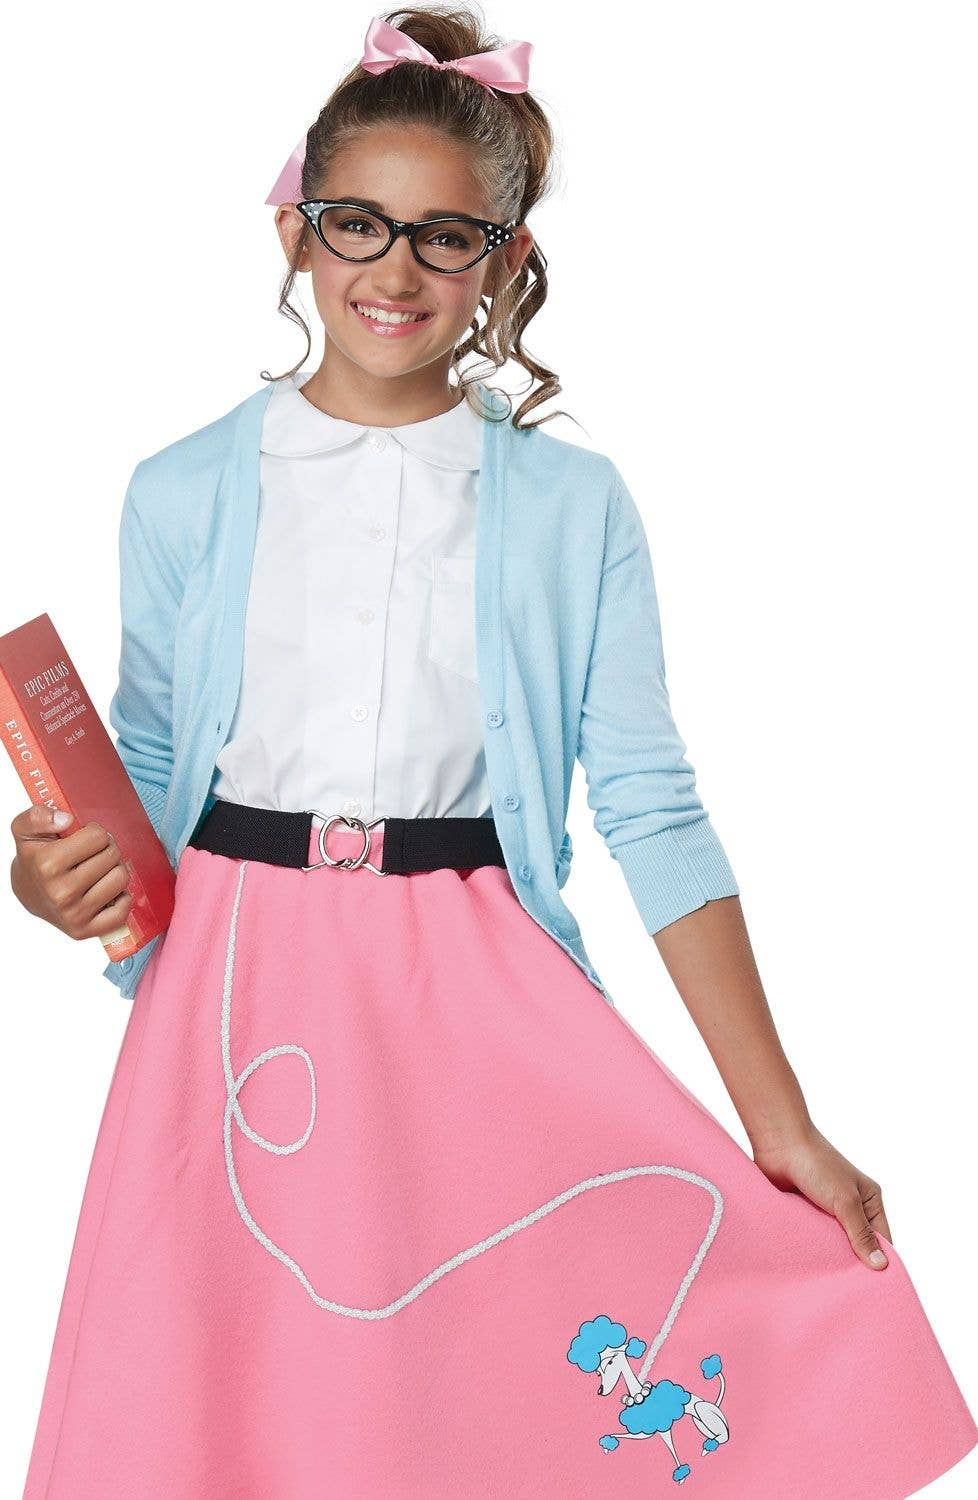 c954cab63adc 1950's Poodle Skirt Girls Costume | Retro 50's Girls Outfit Costume